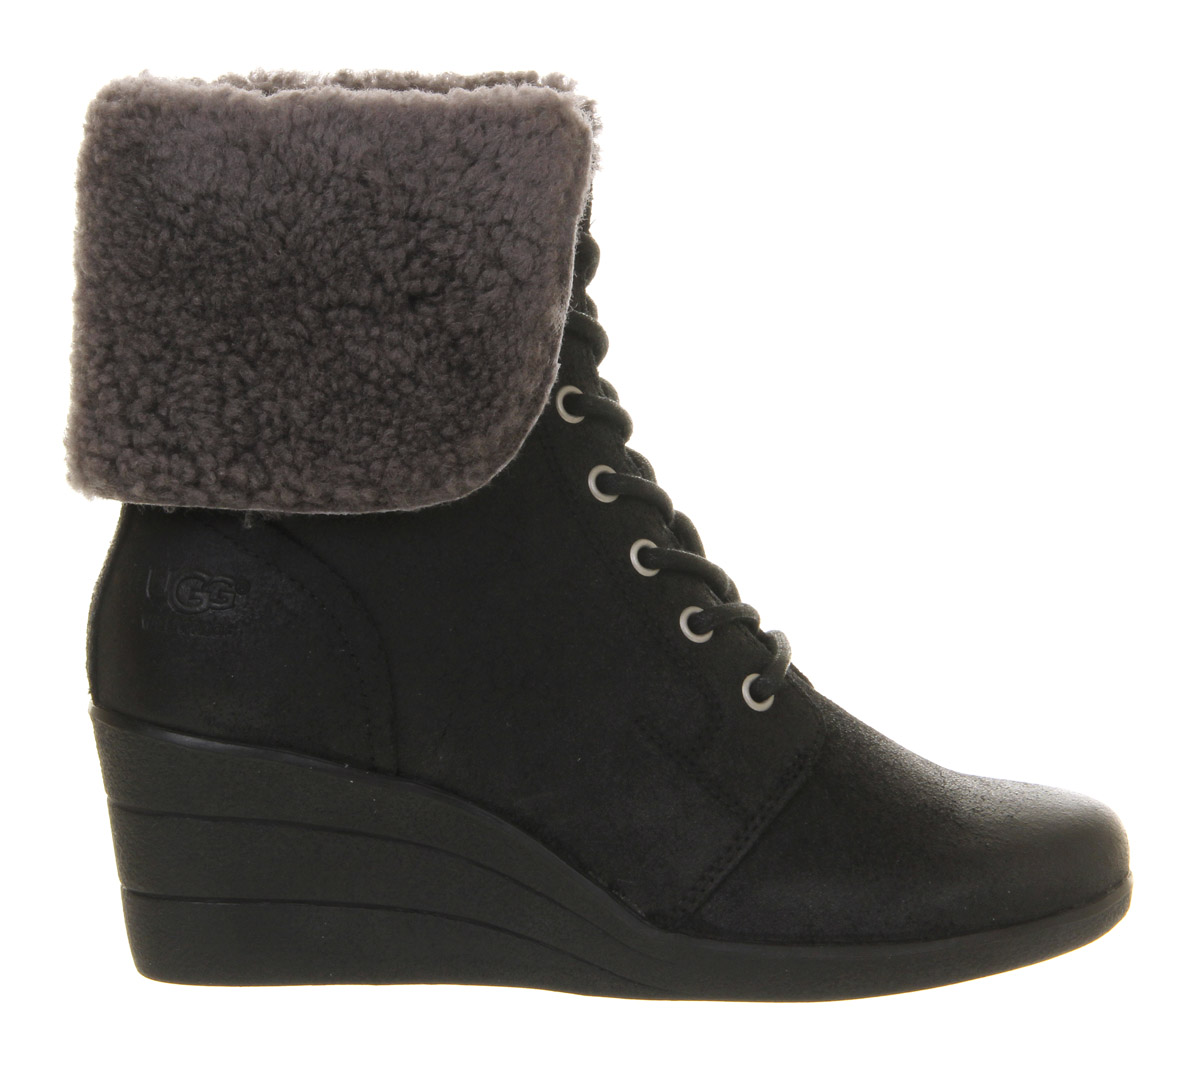 ladies wedge ugg boots